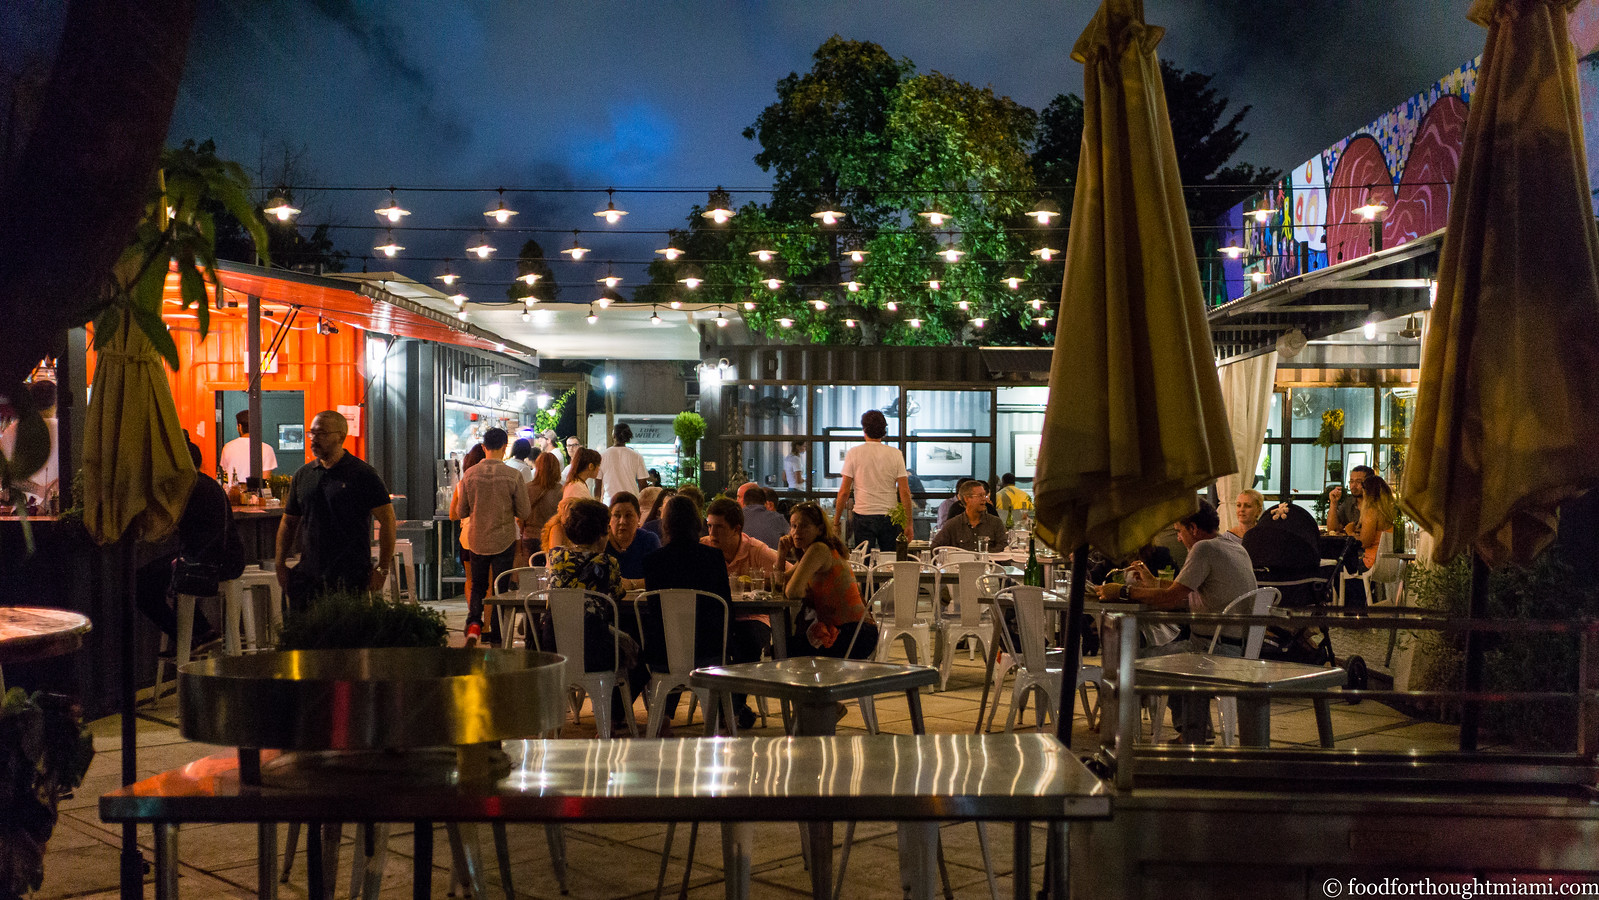 food for thought | a miami food blog: first thoughts: Charcoal ...